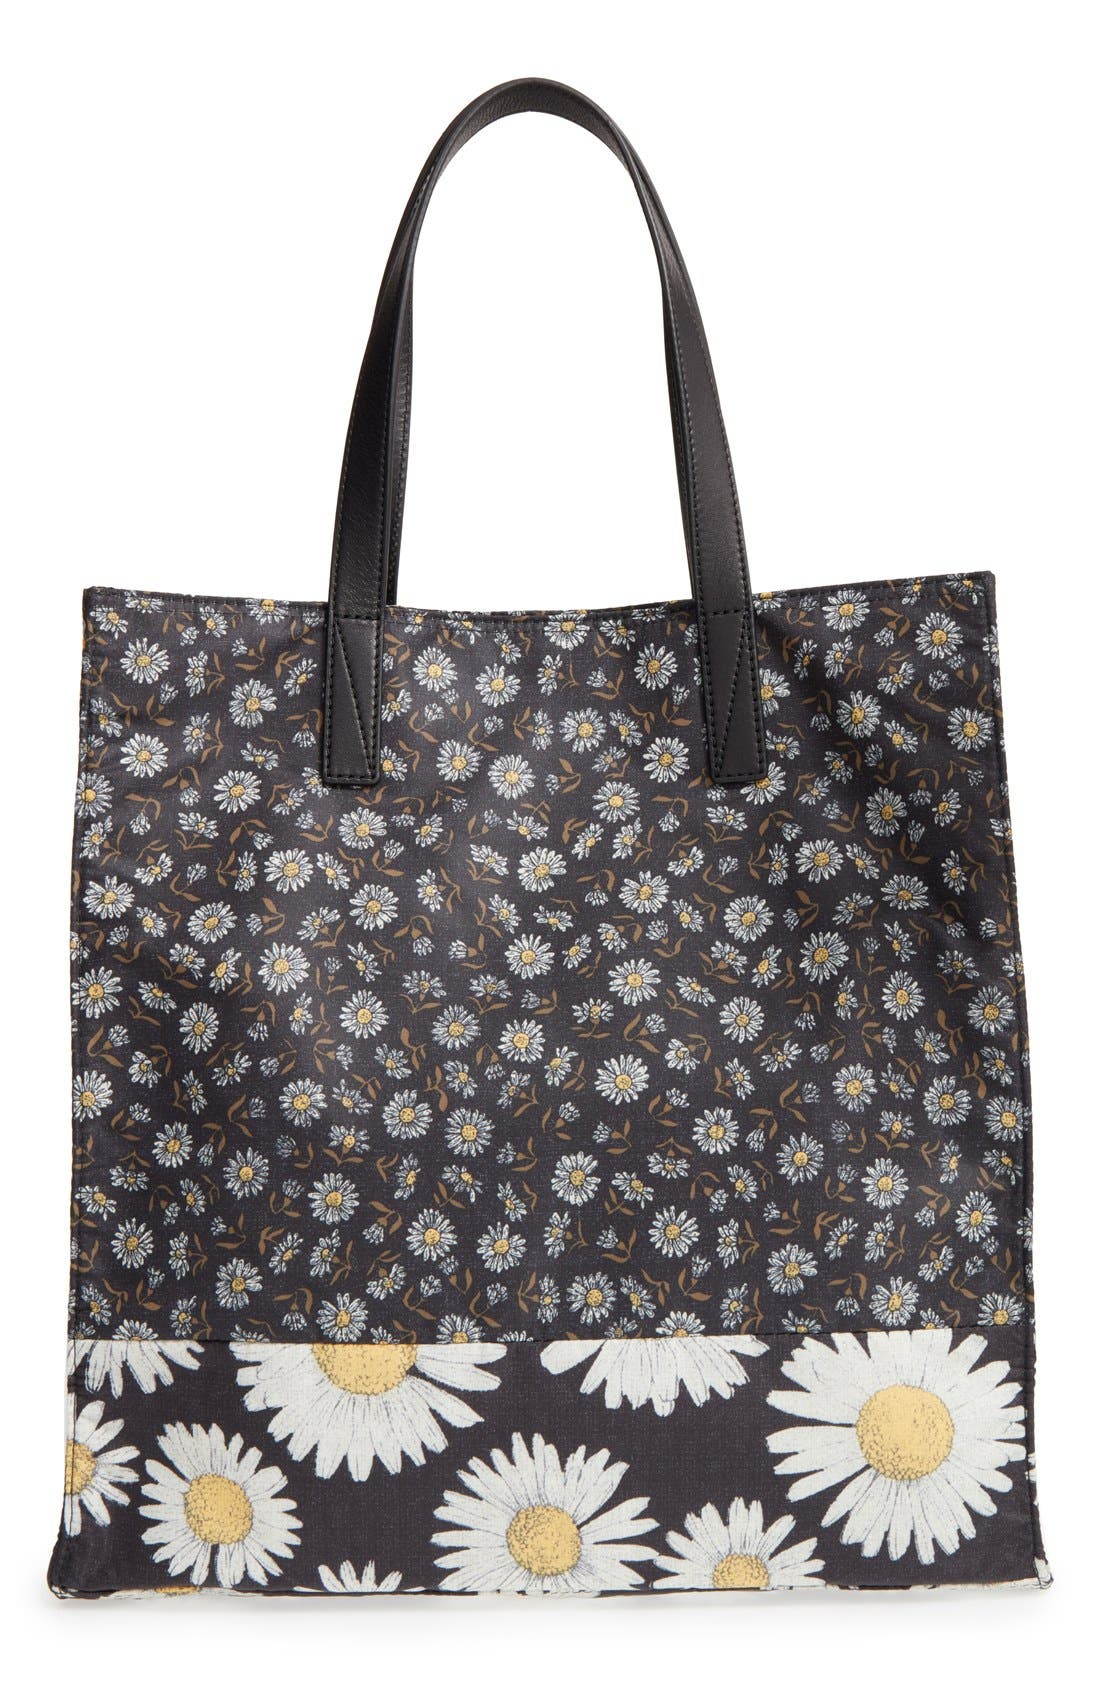 Alternate Image 1 Selected - MARC JACOBS 'B.Y.O.T. - Daisy' Floral Print Tote